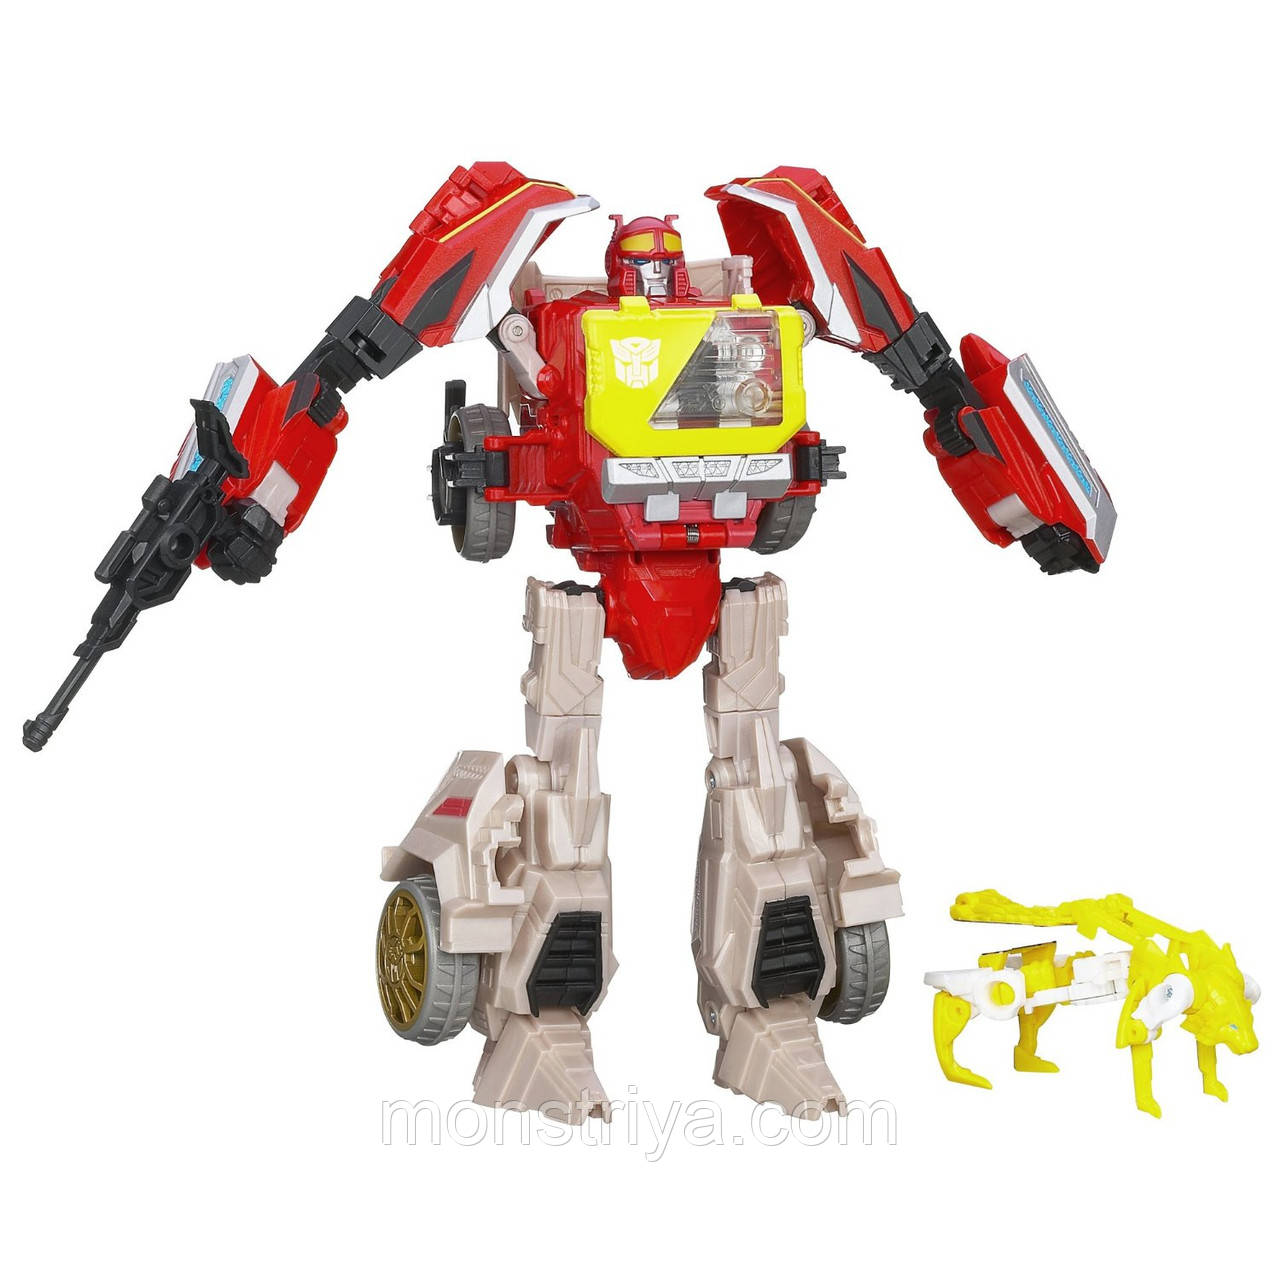 Transformers Робот Трансформер Generations Voyager Class Autobot Blaster